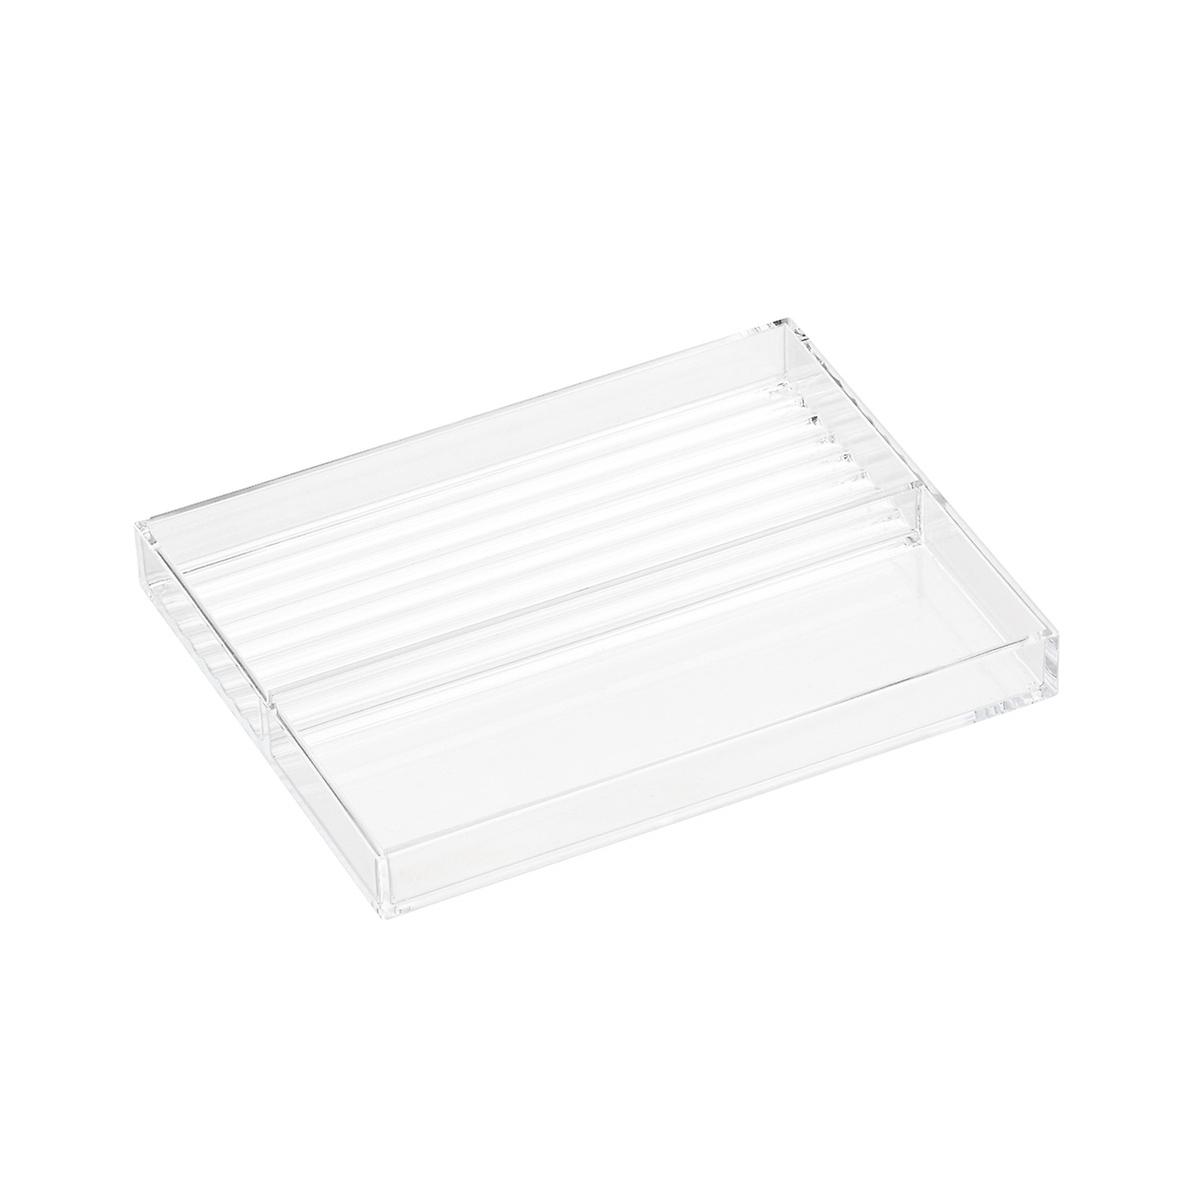 Image result for Pencil & Brush Acrylic Tray Clear